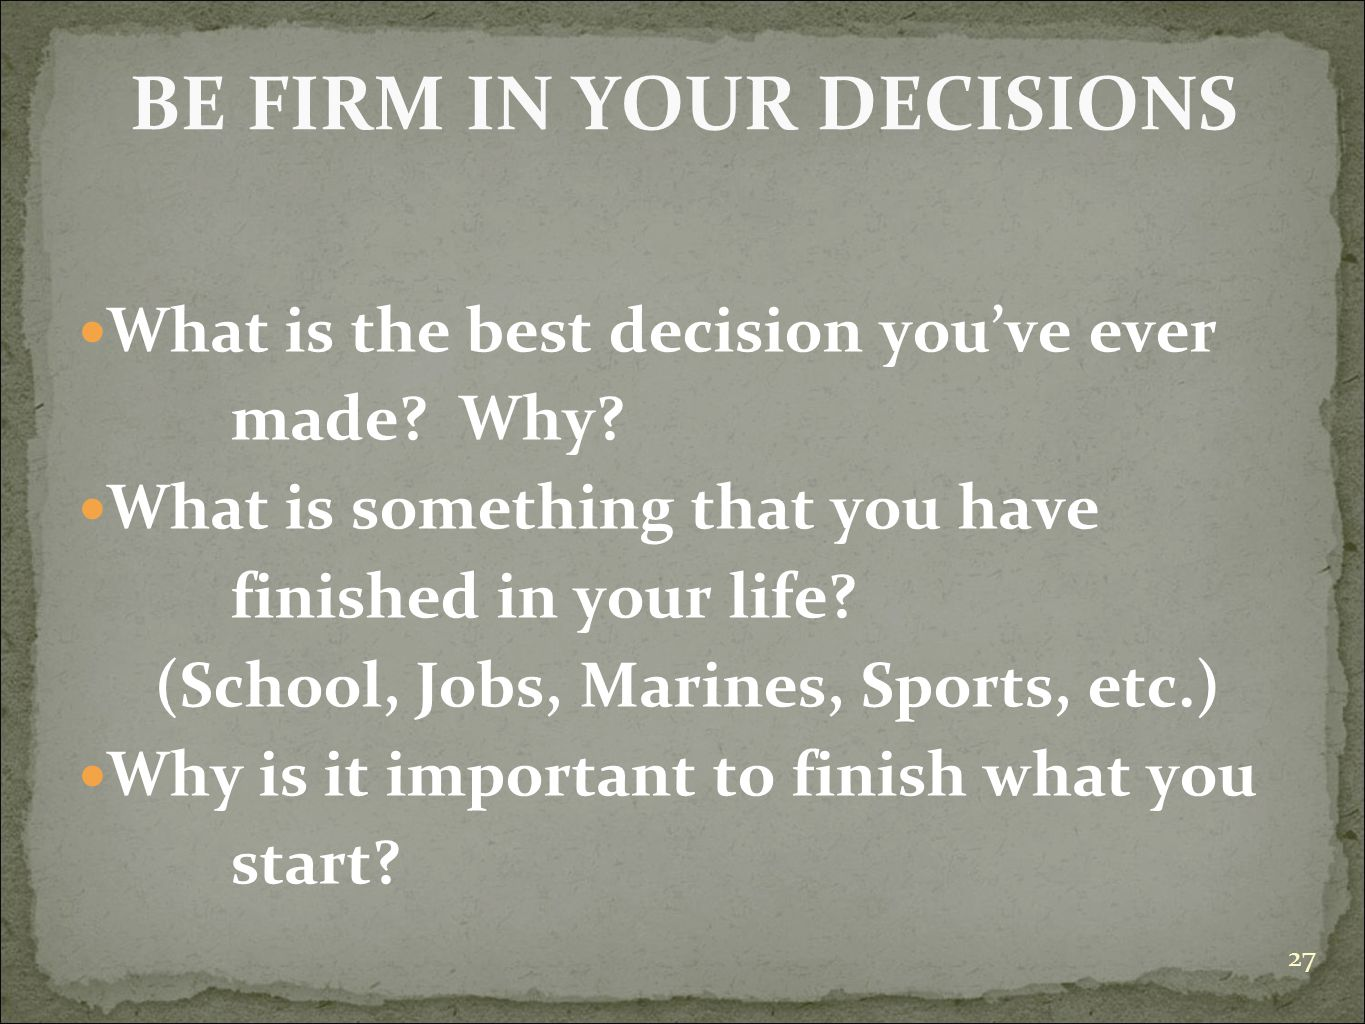 BE FIRM IN YOUR DECISIONS What is the best decision you've ever made? Why? What is something that you have finished in your life? (School, Jobs, Marin